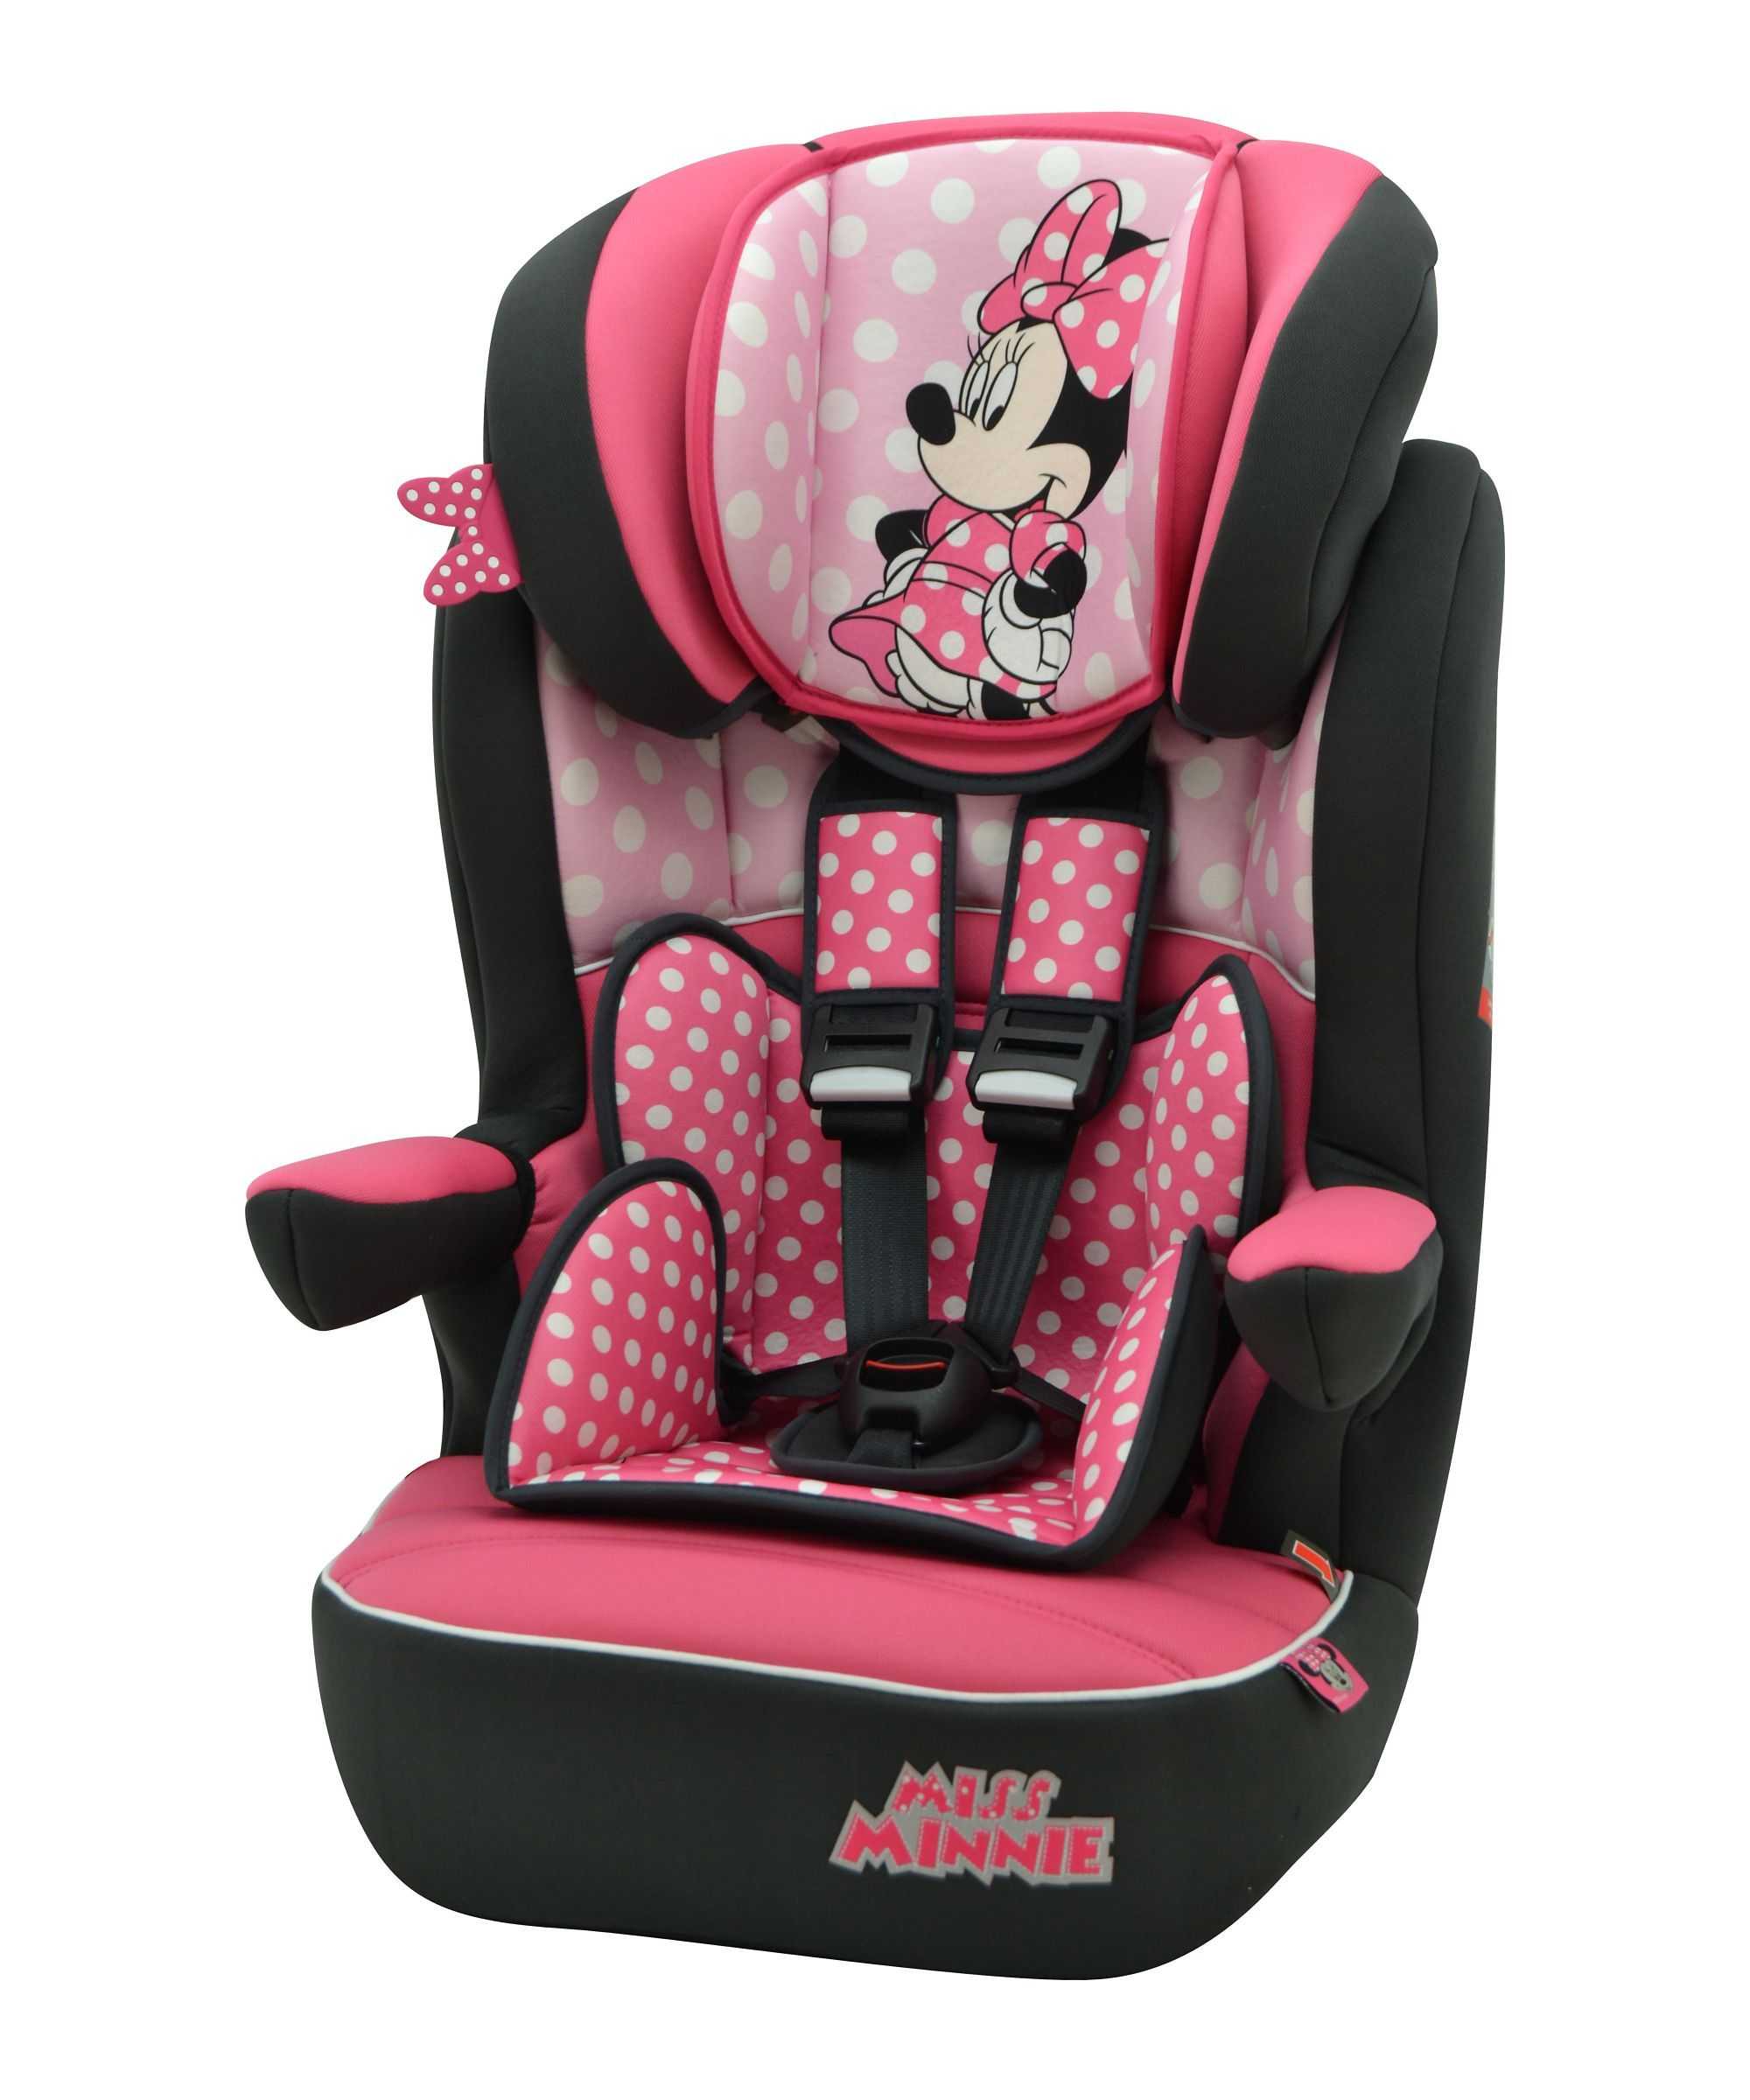 Disney Minnie Mouse Imax Sp High Back Booster Car Seat With